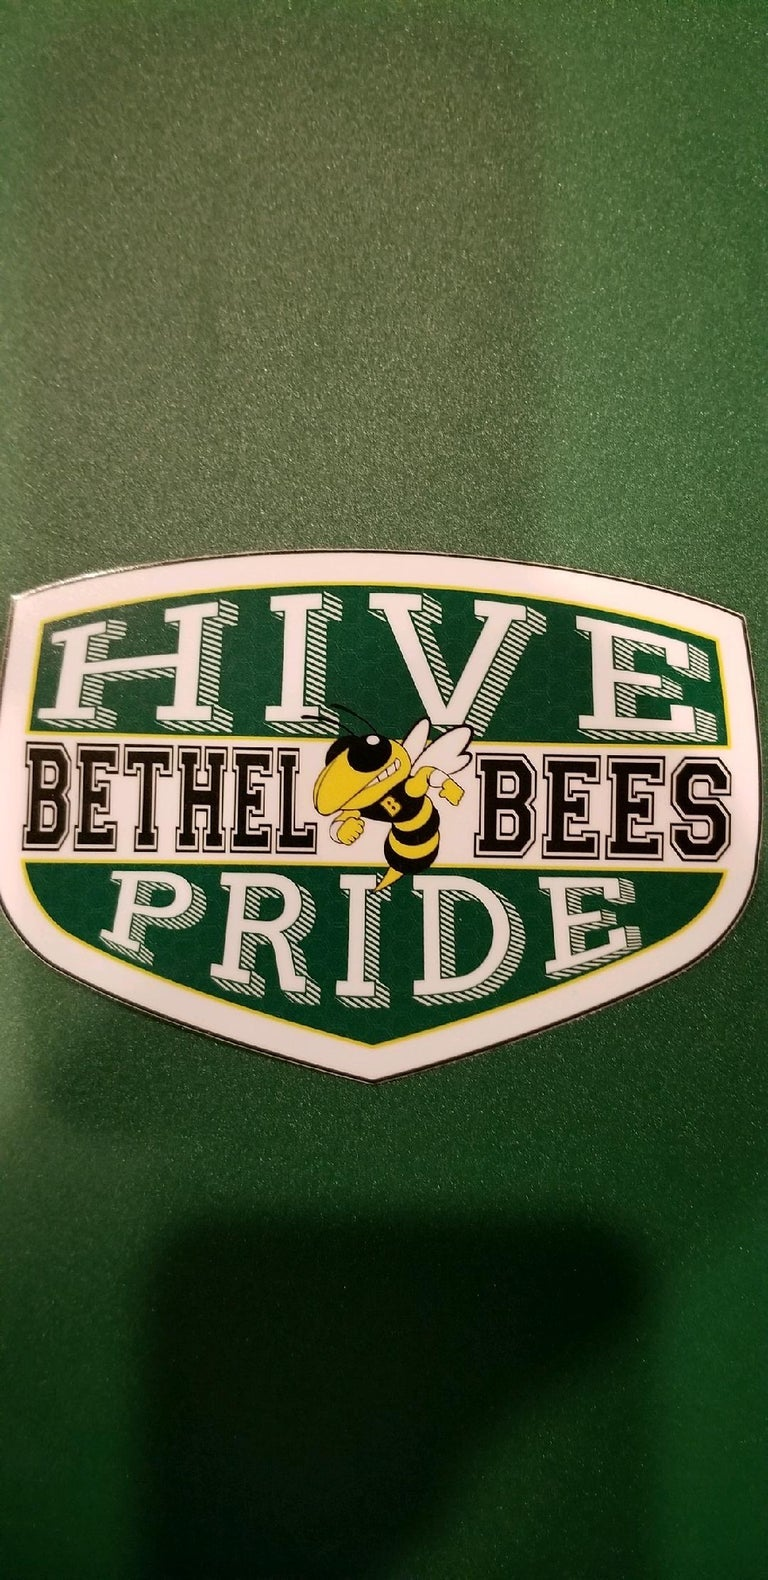 Image of Car and window hive pride